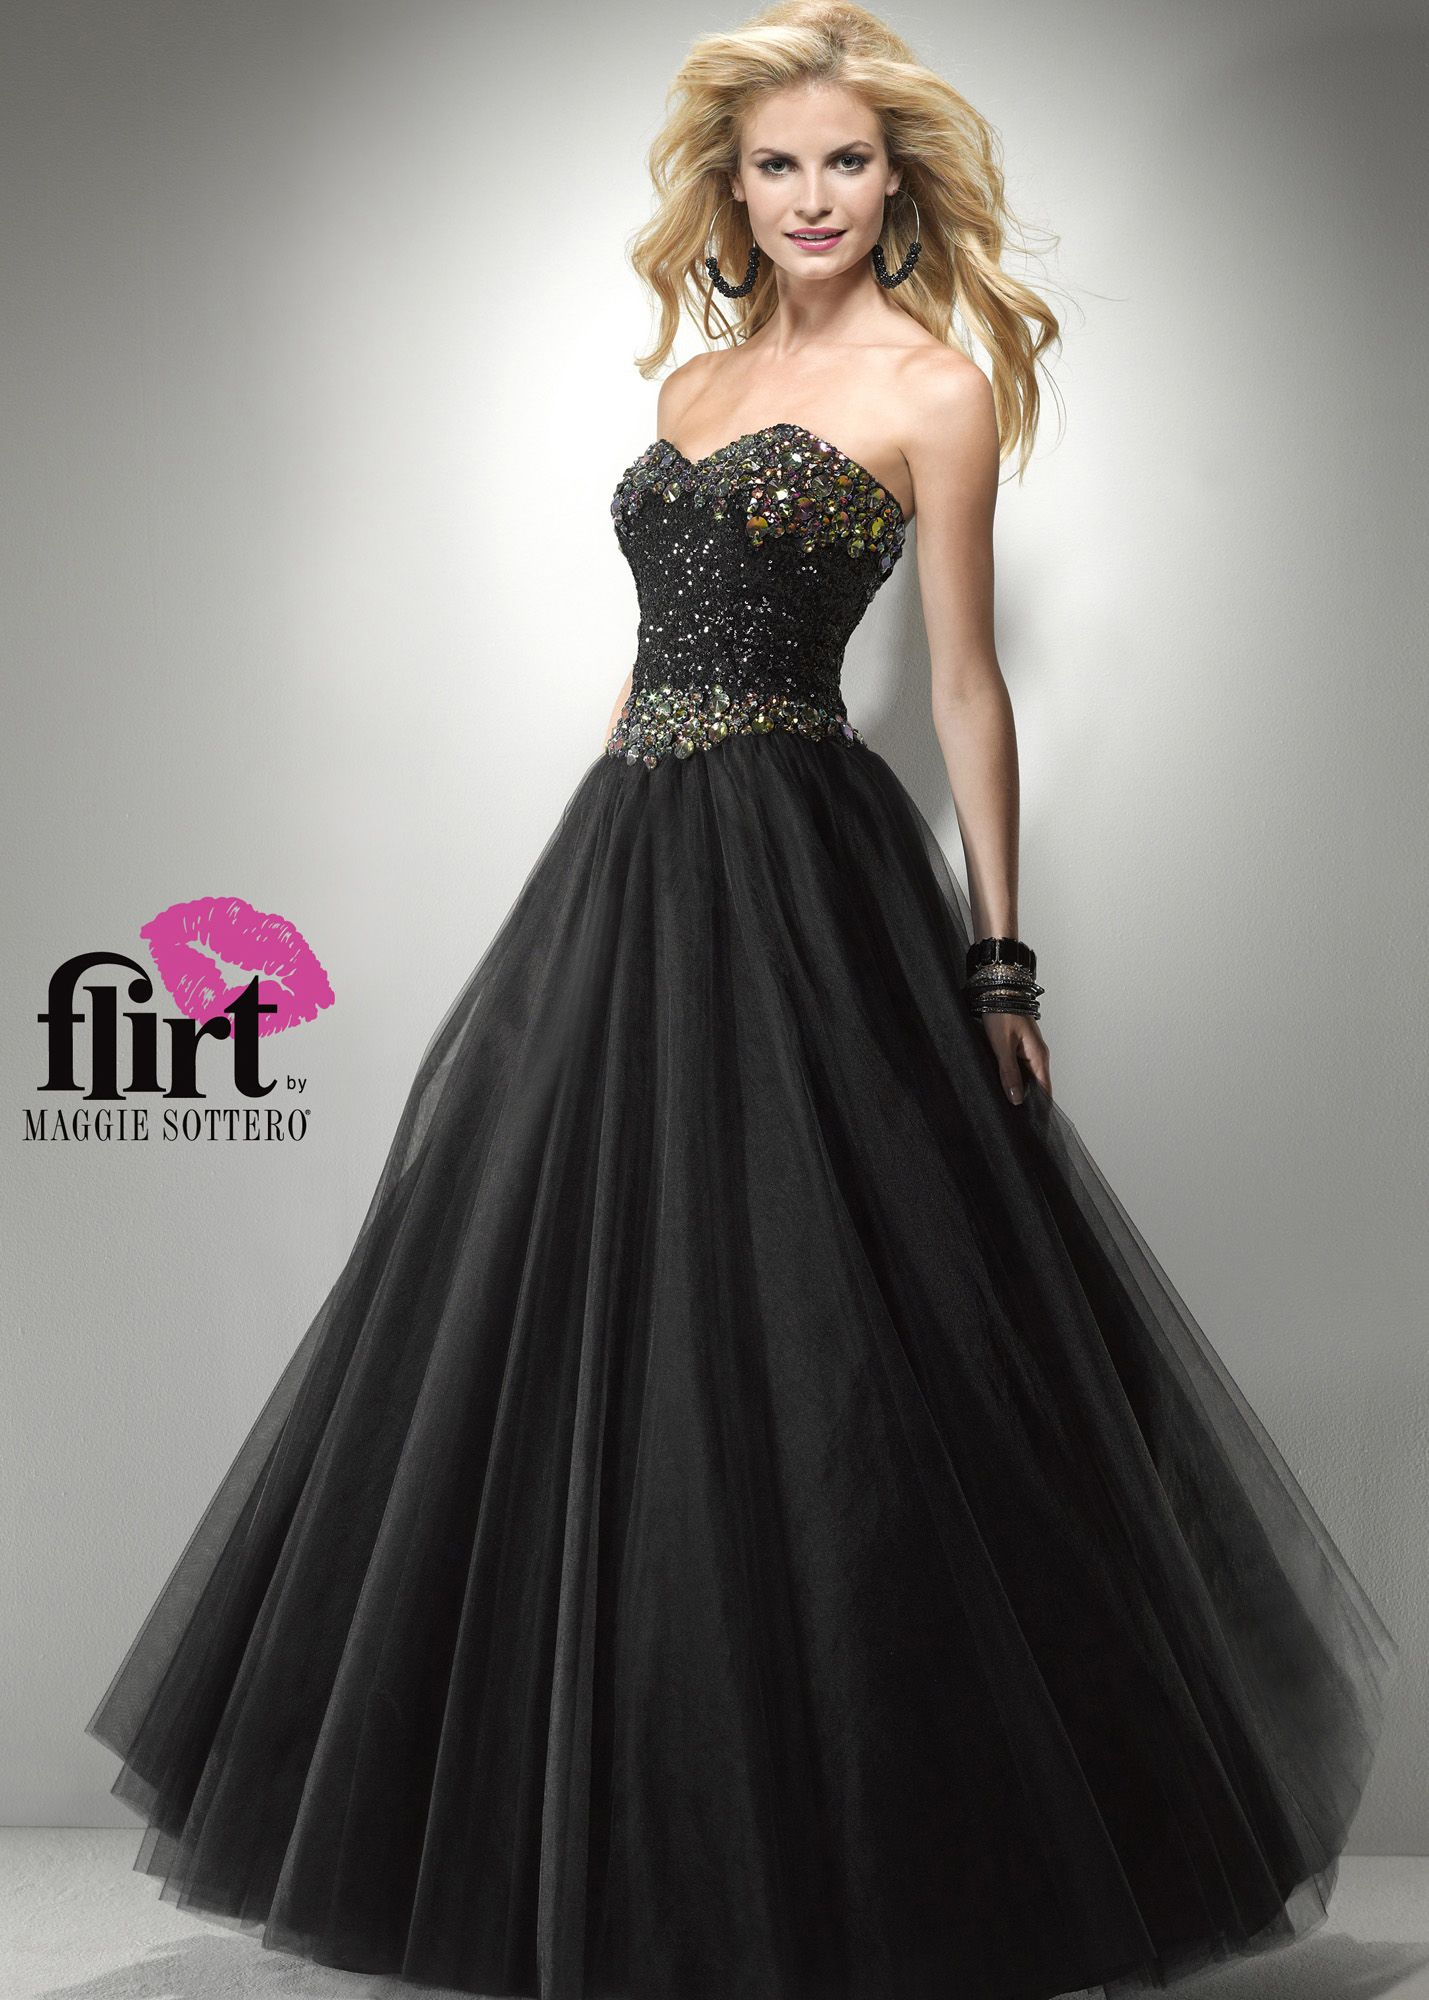 Buy now Flirt by Maggie Sottero P5794 black strapless ball gown ...